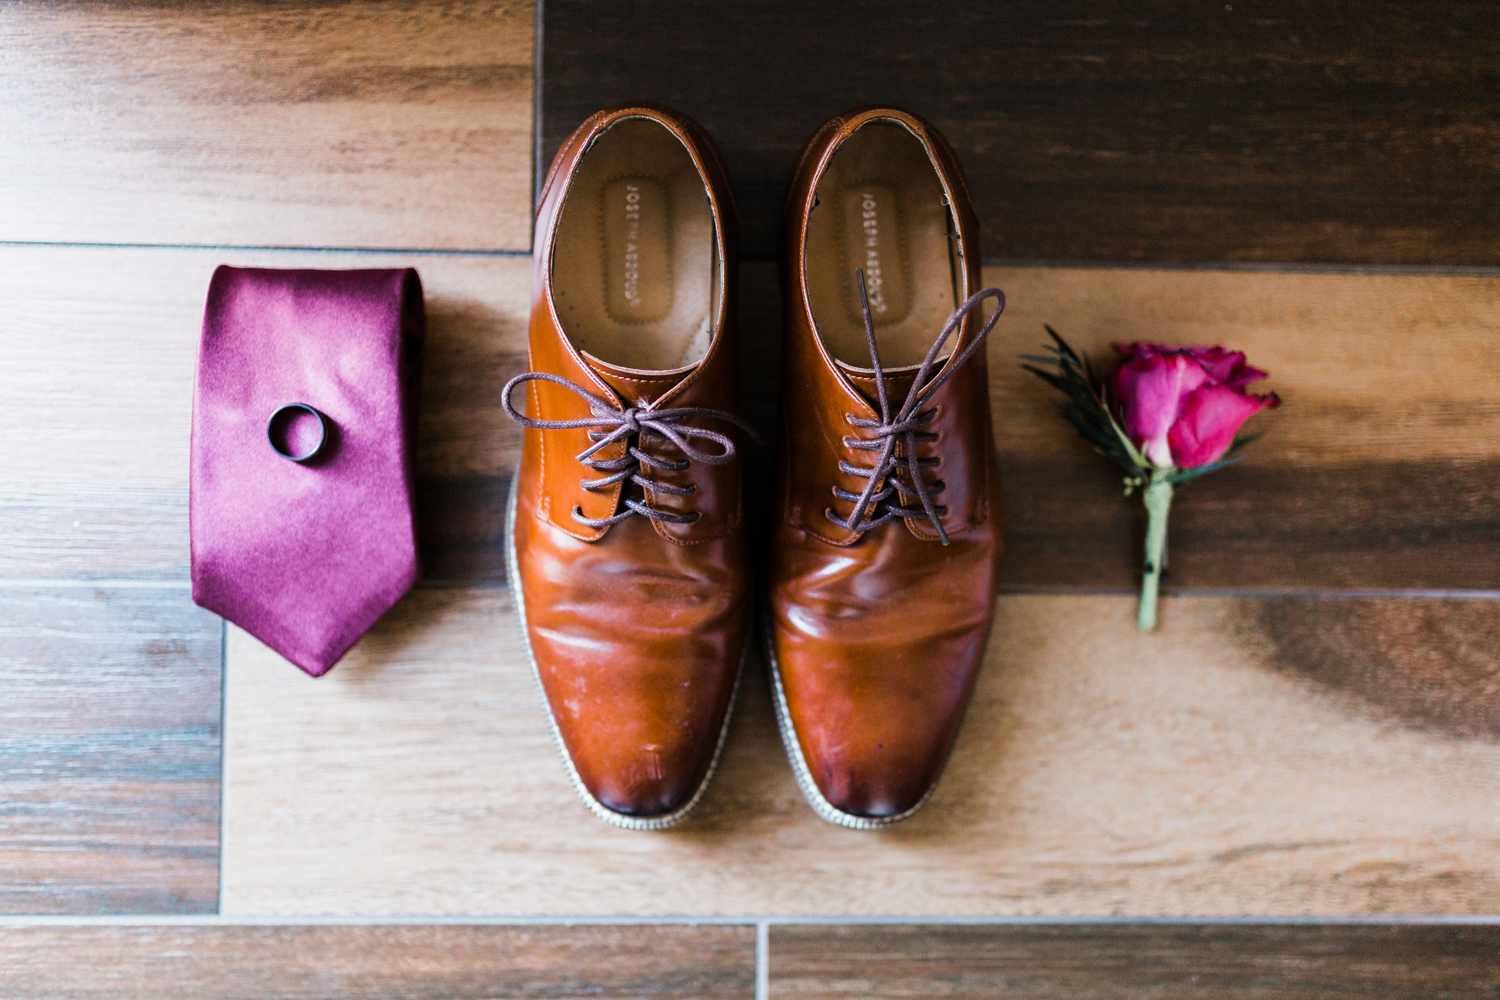 Grooms details, shoes tie and ring